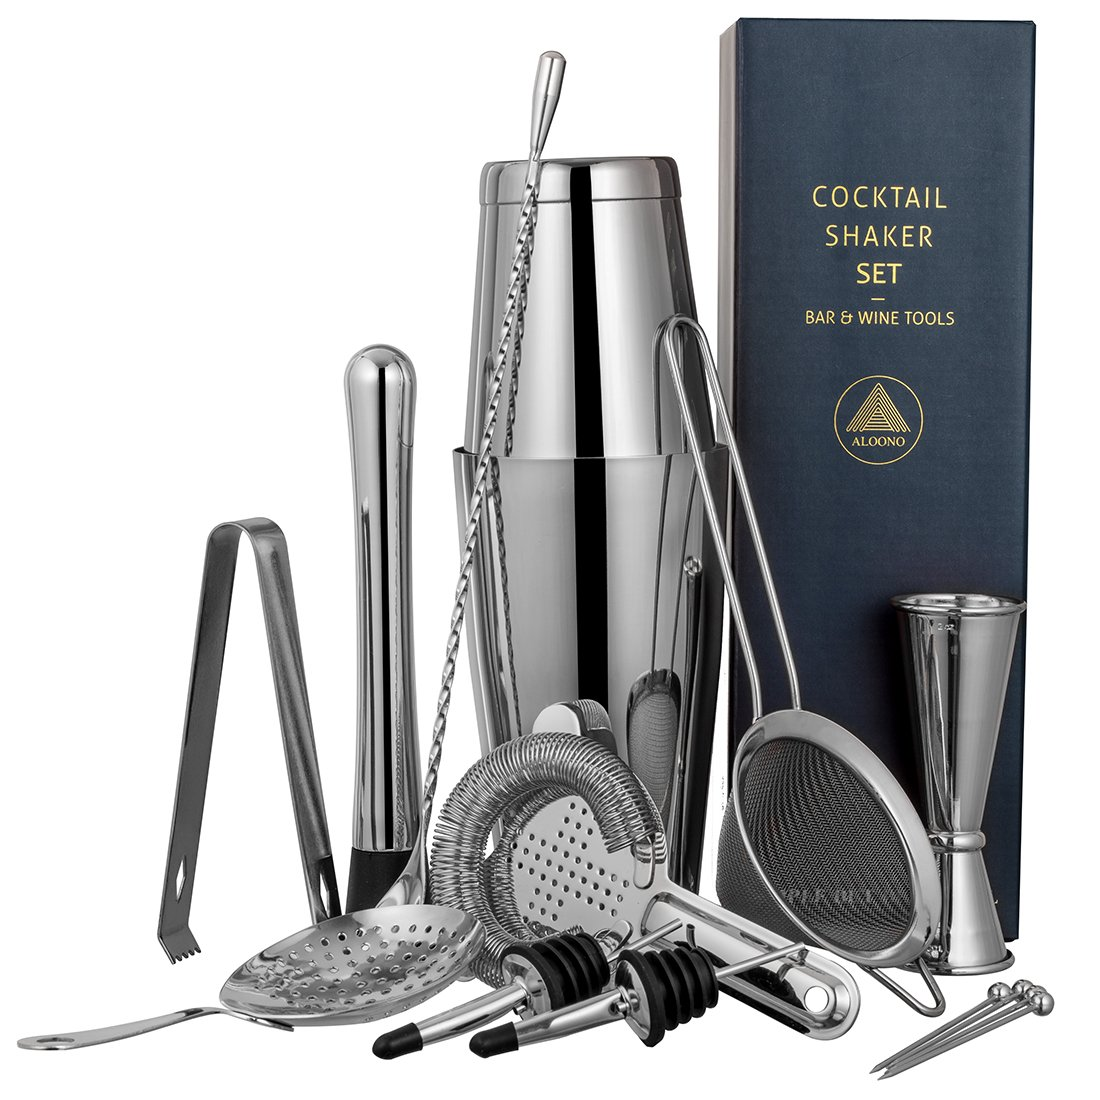 15-piece Cocktail Shaker Bar Set: 2 Weighted Boston Shakers, Cocktail Strainer Set, Double Jigger, Cocktail Muddler and Spoon, Ice Tong, 2 Liquor Pourers and 4 Cocktail Picks